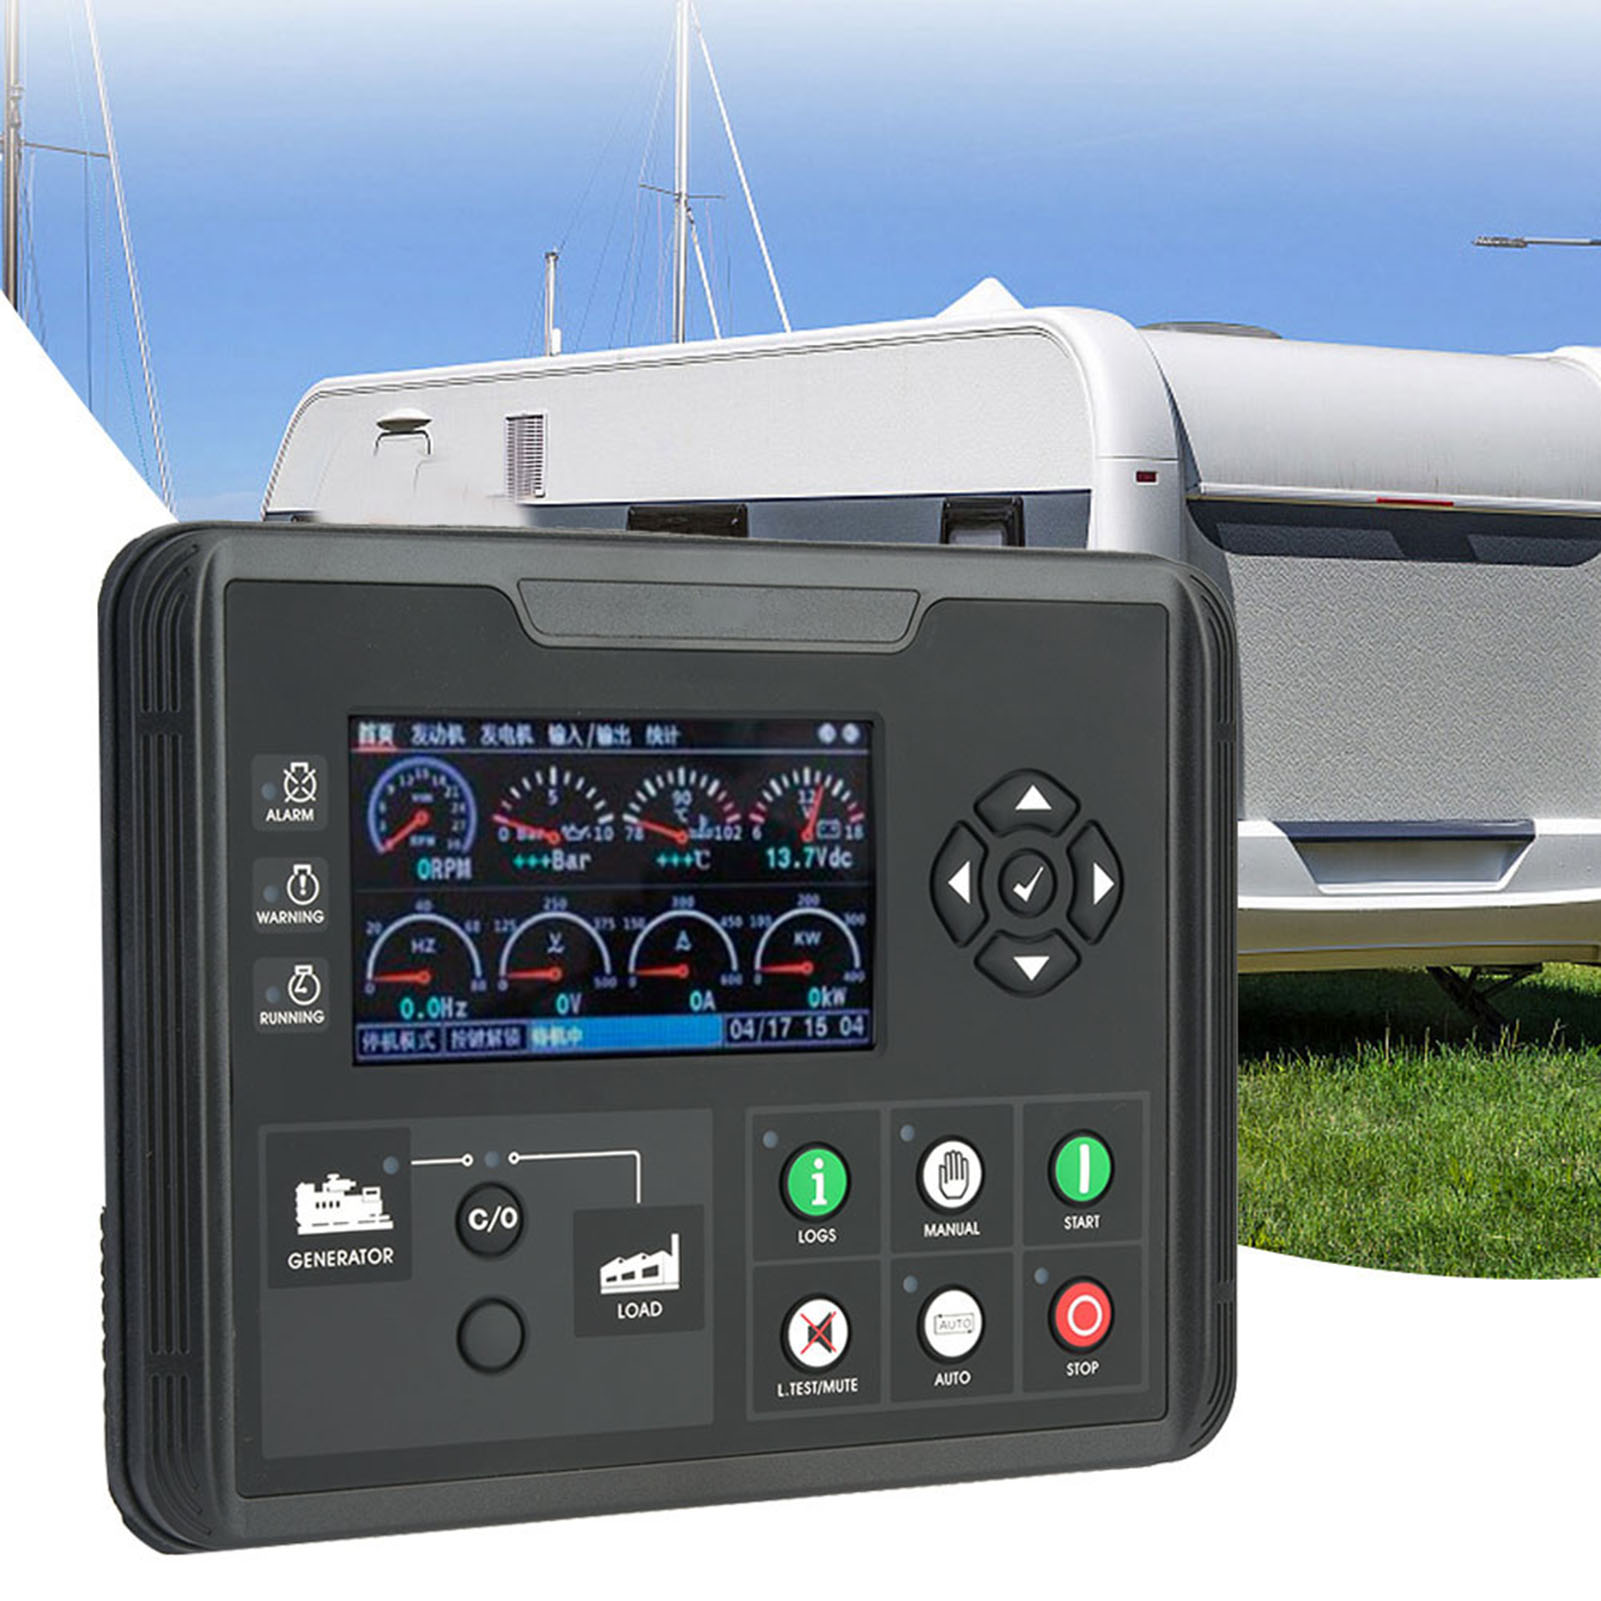 Details about DC60D LCD Display Generator Control Panel for Diesel Genset  Parameters Monitor